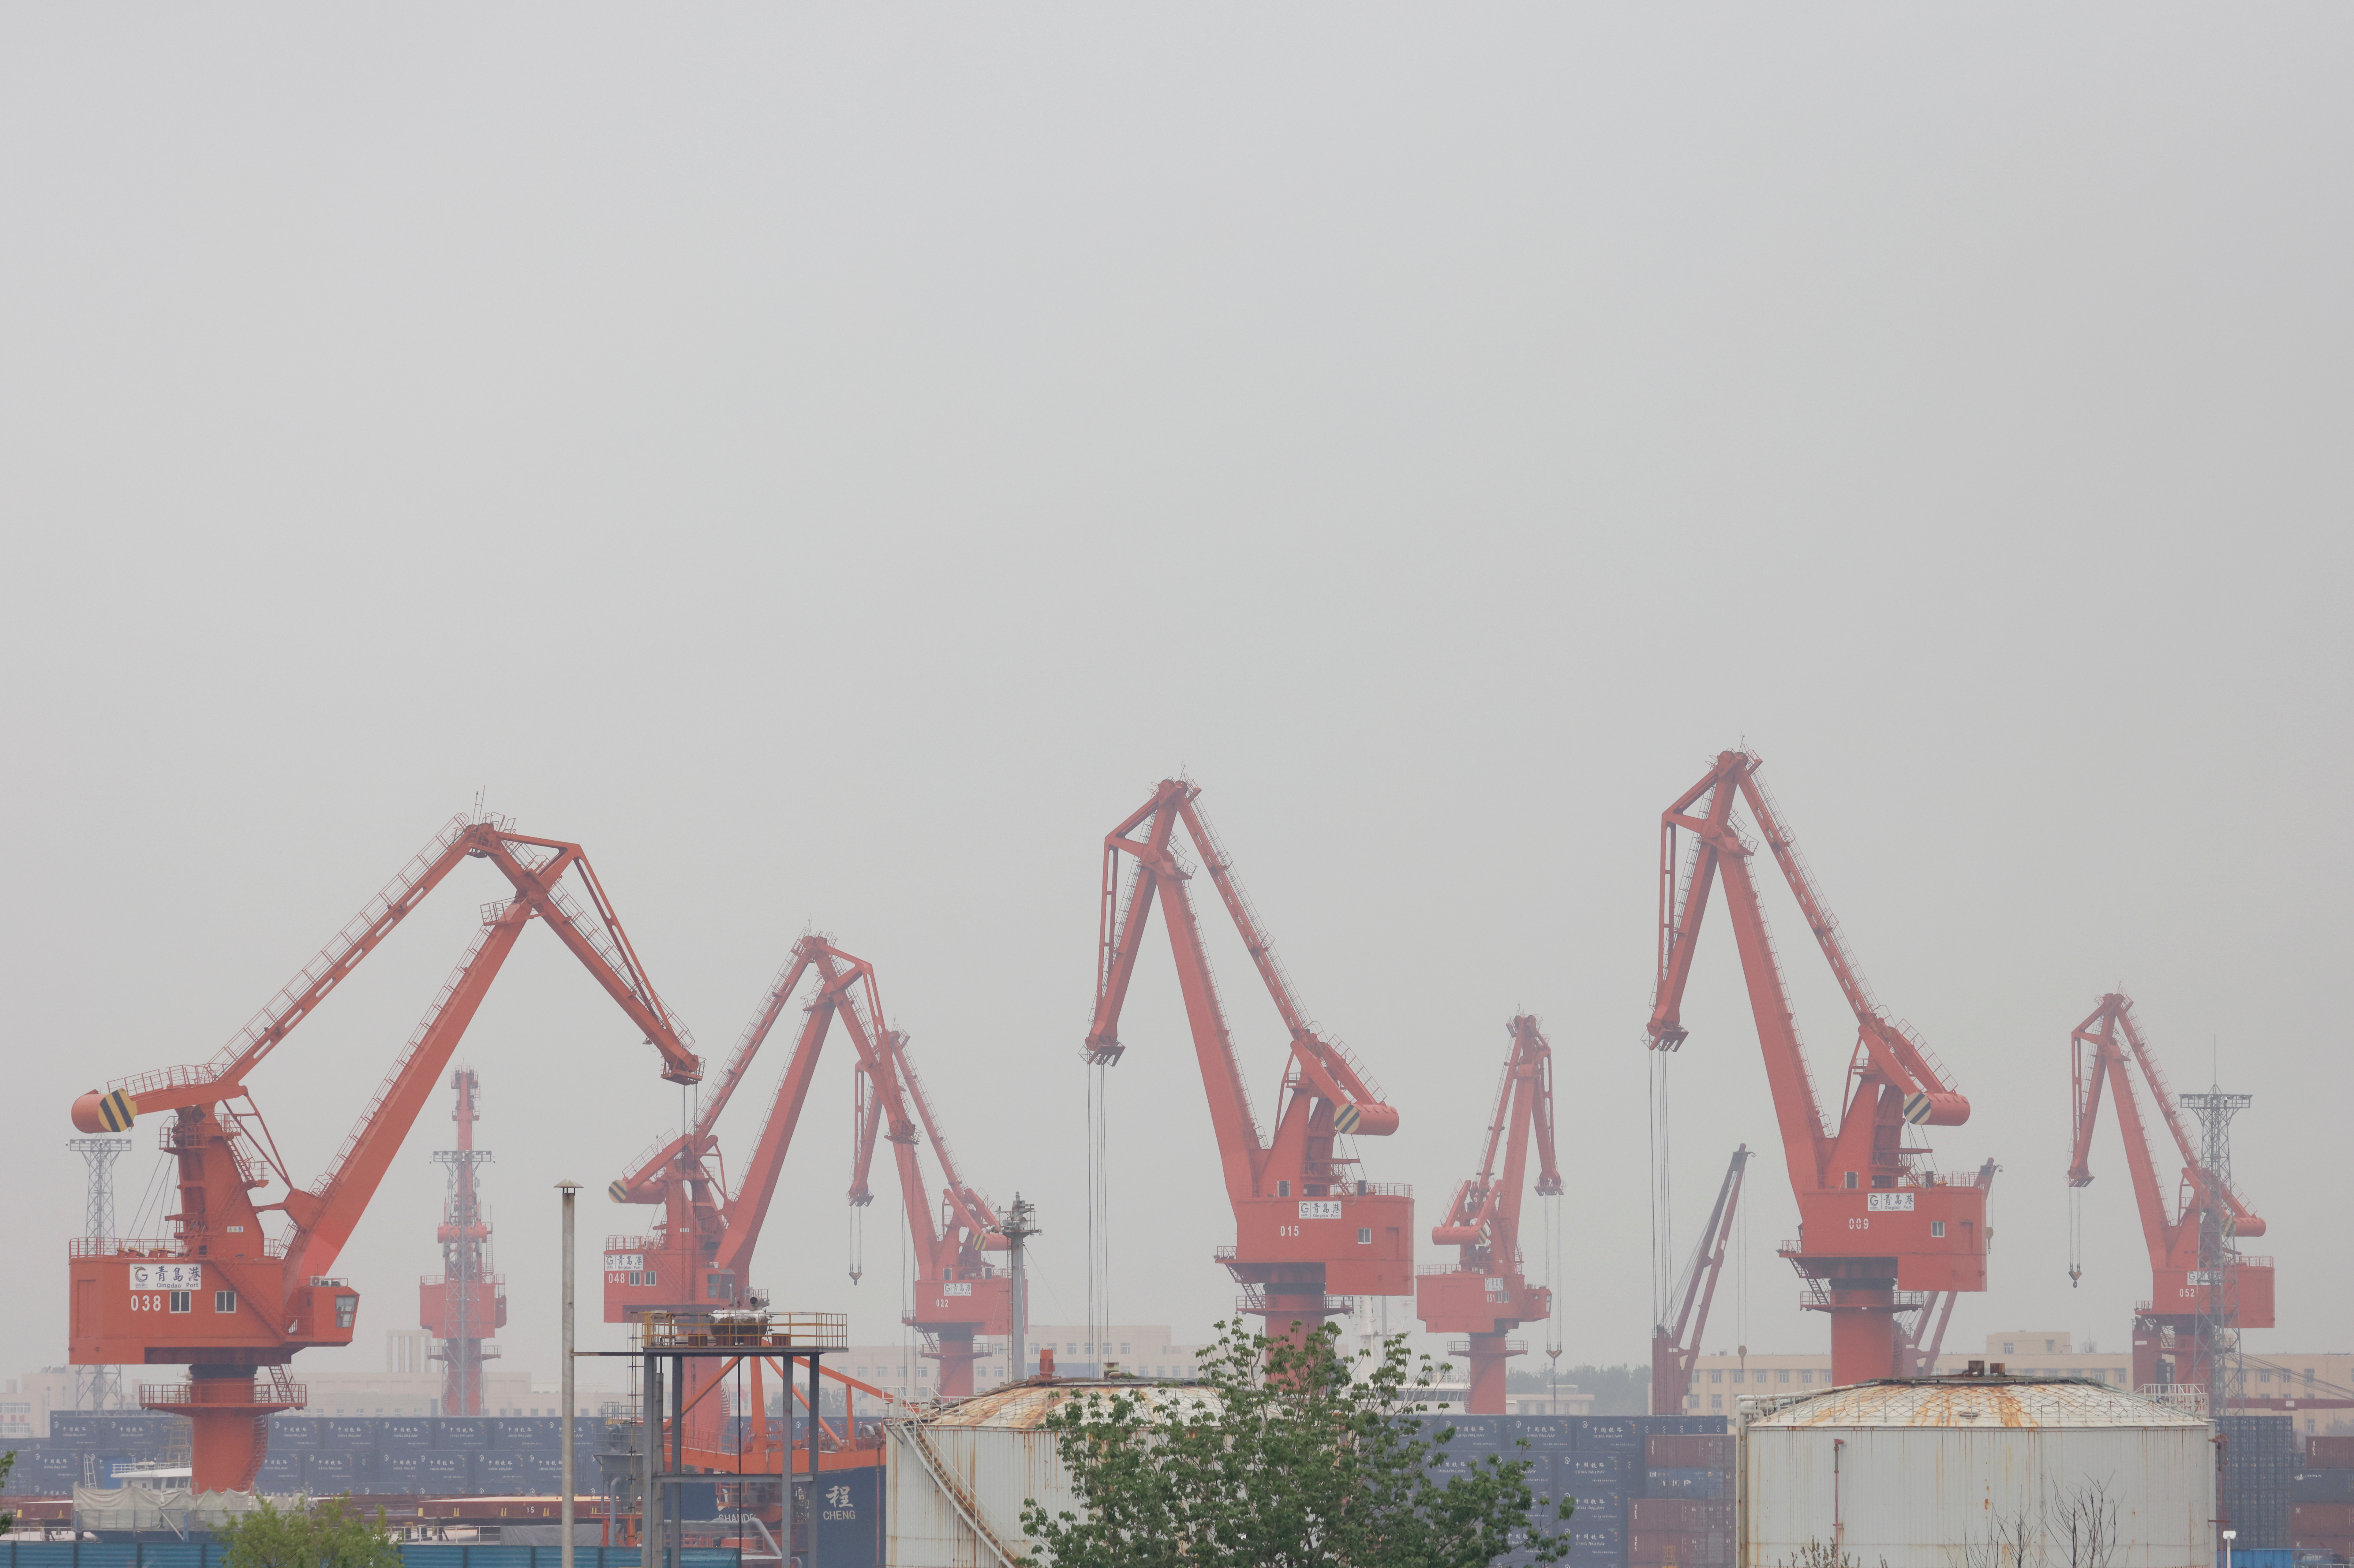 Cranes are seen at the port of Qingdao in Shandong province, China, following an oil spill in the Yellow Sea caused by a collision between tanker A Symphony and bulk vessel Sea Justice off the port, April 28, 2021. REUTERS/Carlos Garcia Rawlins